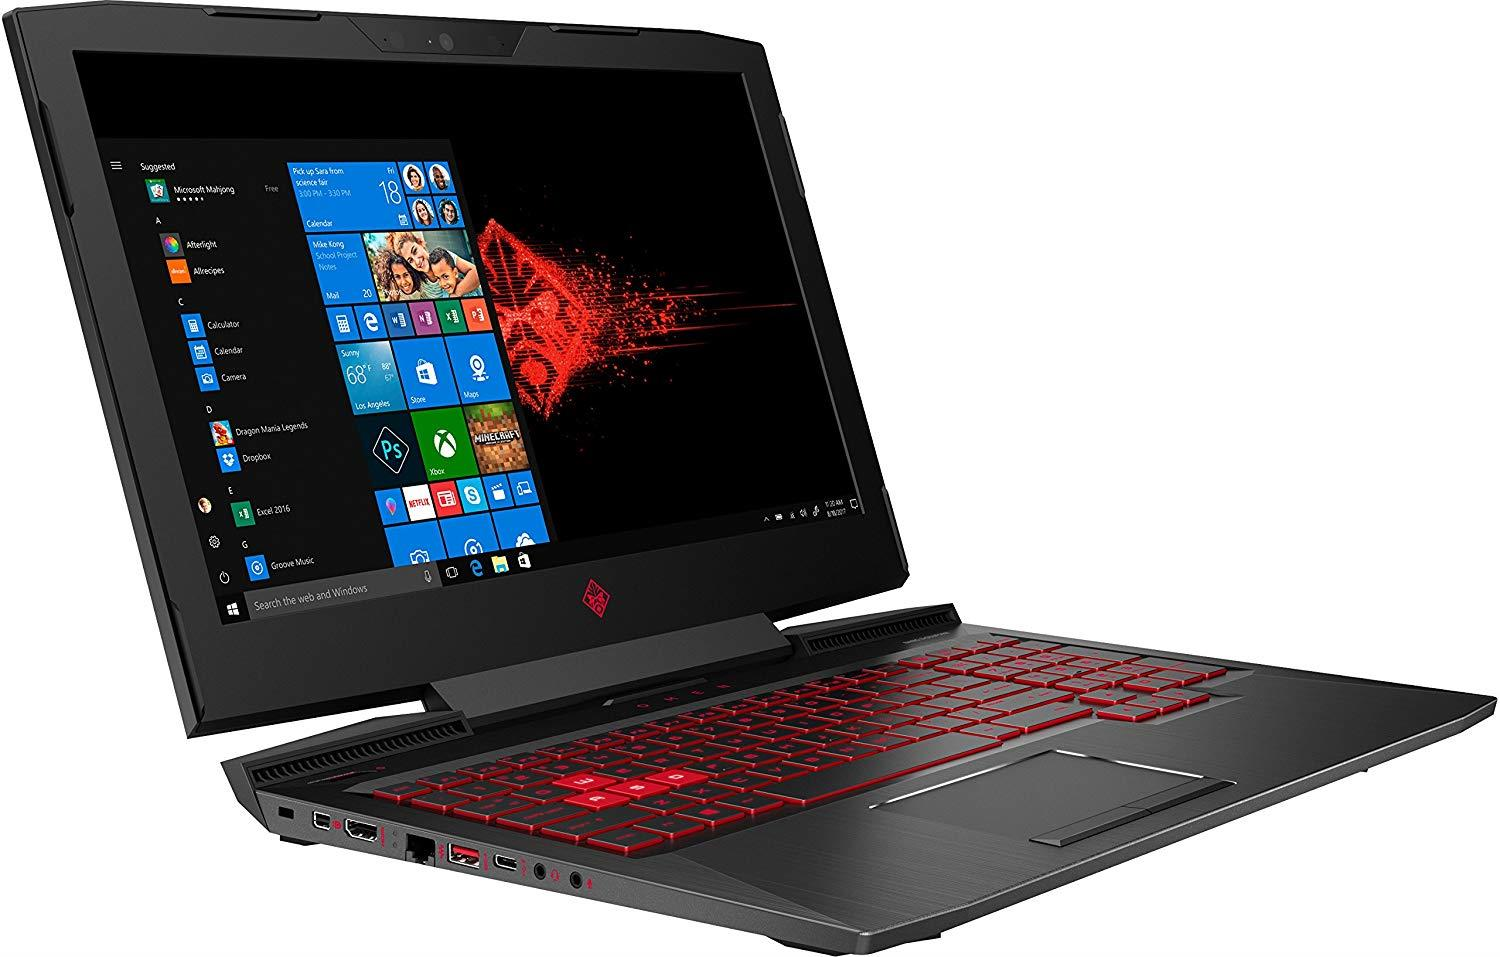 HP 15-CE198WM 15.6″ FHD Gaming Laptop, Windows 10, Intel Core i7-8750H Processor, NVIDIA GeForce GTX 1060 Graphics, 16GB DDR4 SDRAM Memory, 1TB Hard Drive + 256GB SSD